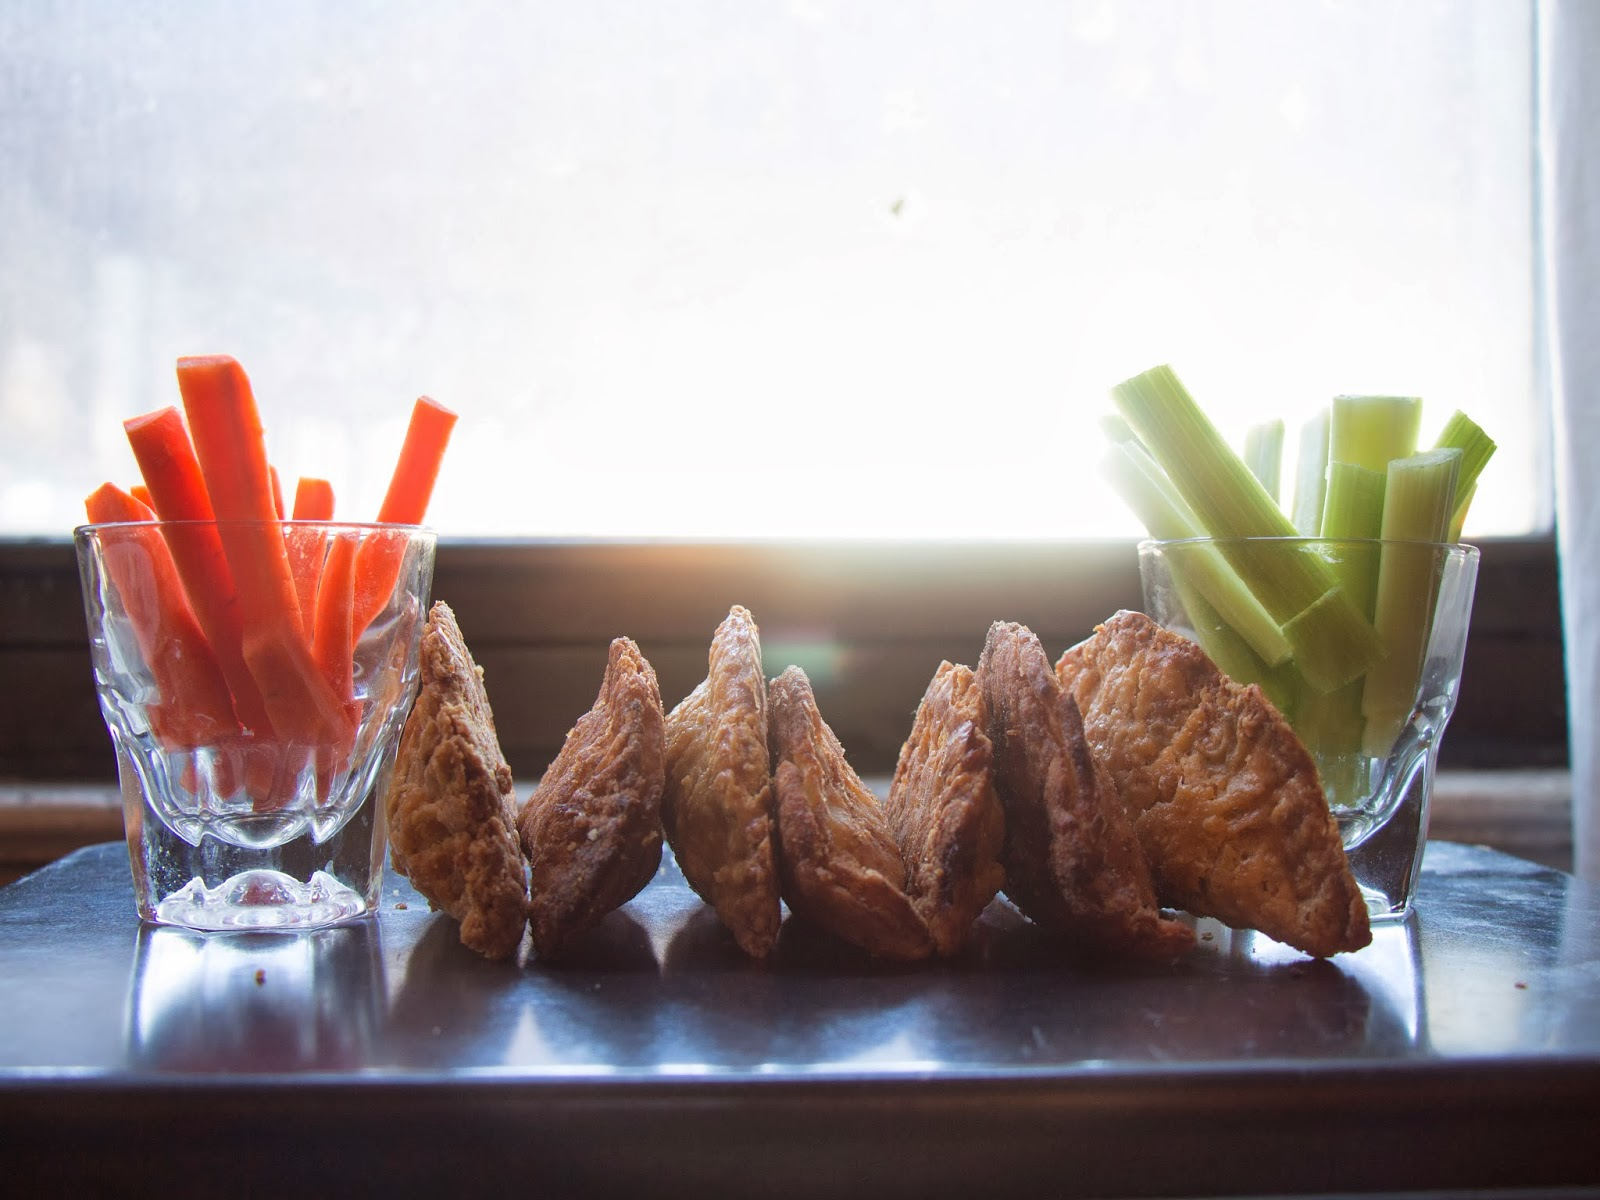 Buffalo Chicken Fried Pies with Celery and Carrot Sticks